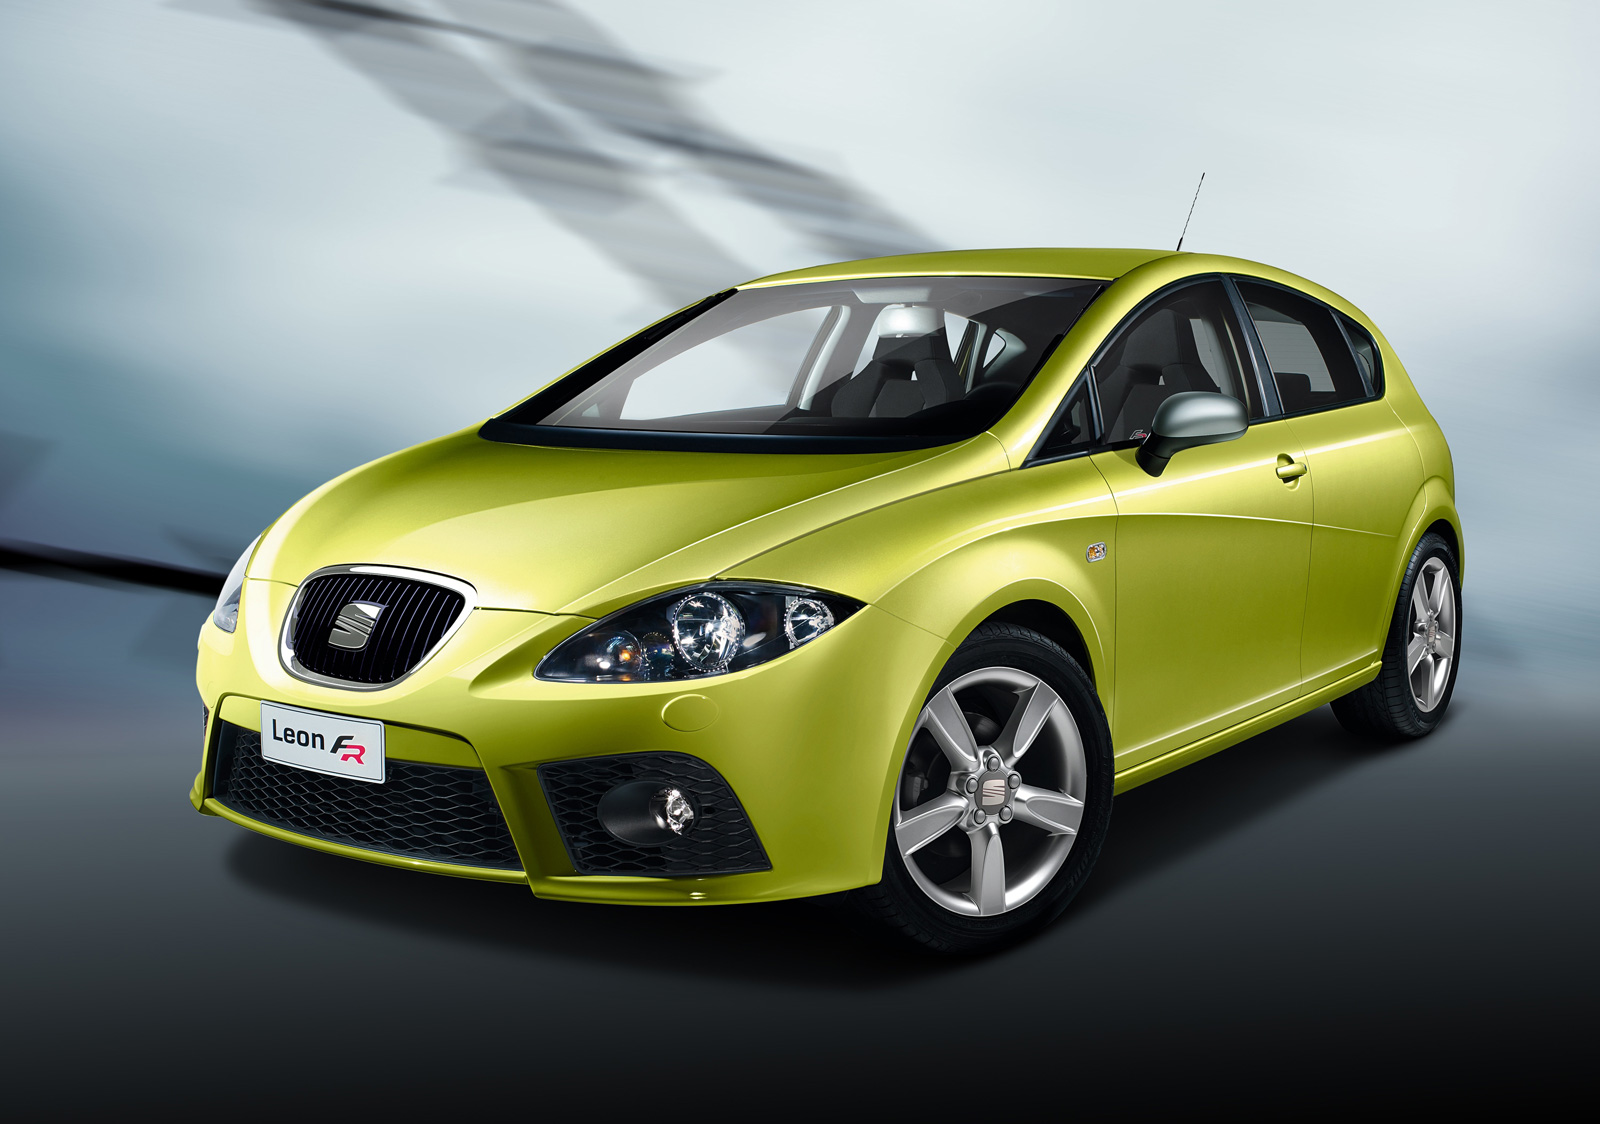 2011 seat leon f r with 118 mph everlasting car. Black Bedroom Furniture Sets. Home Design Ideas